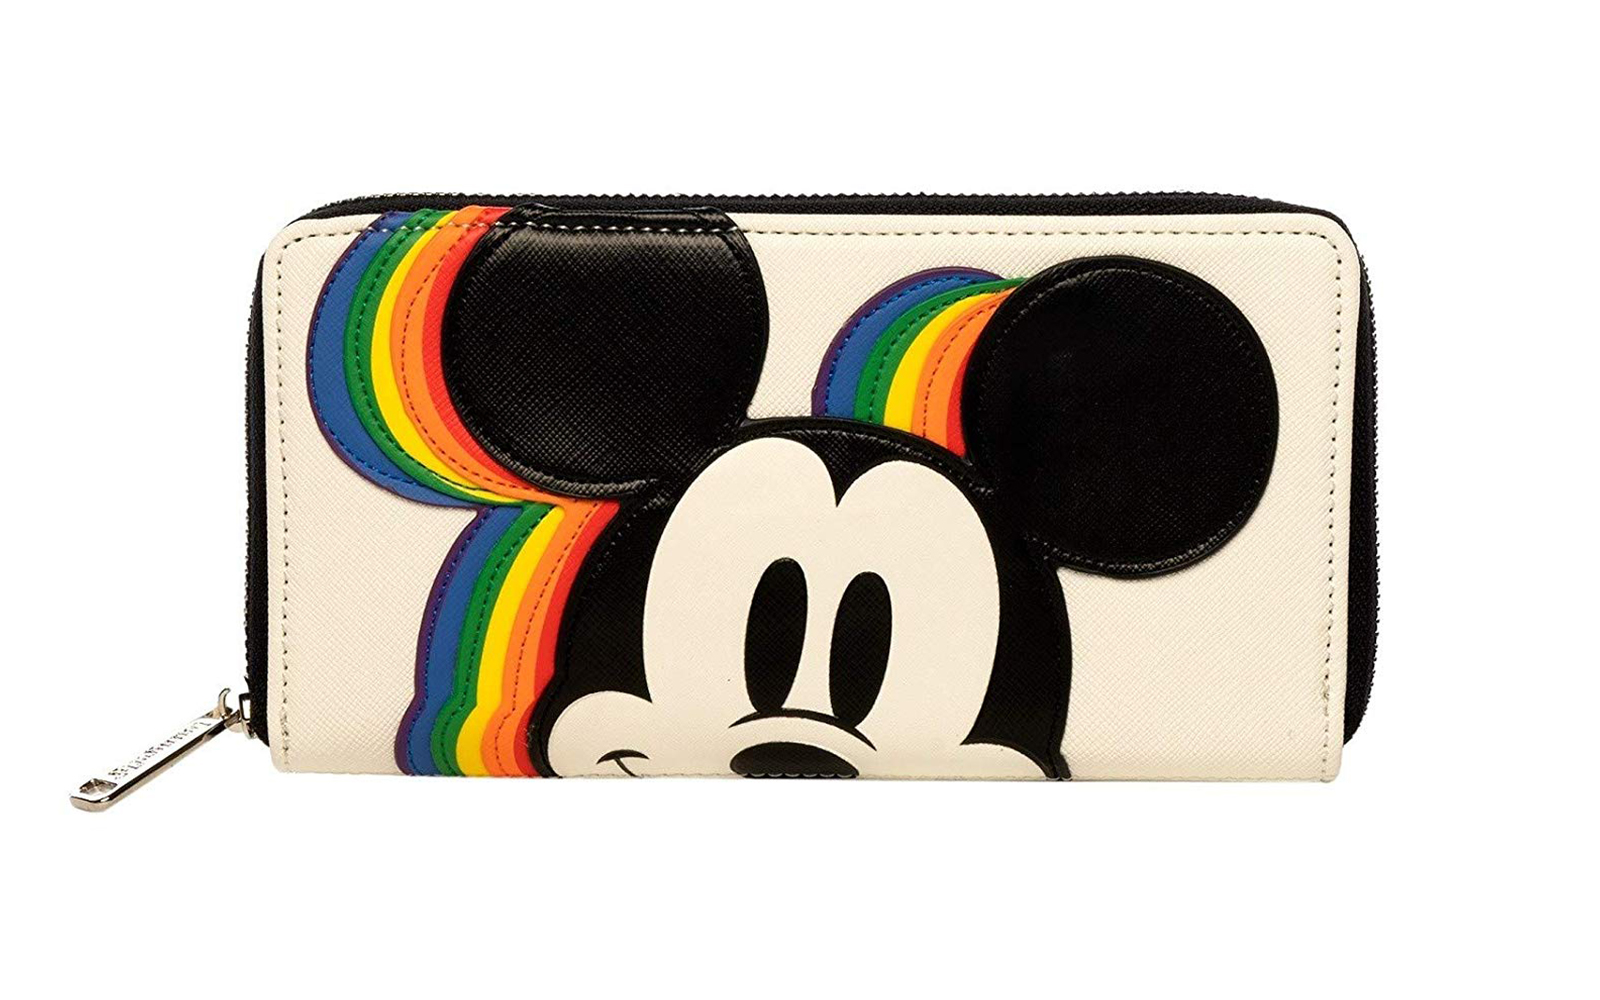 Loungefly x Disney Rainbow Mickey Mouse Wallet